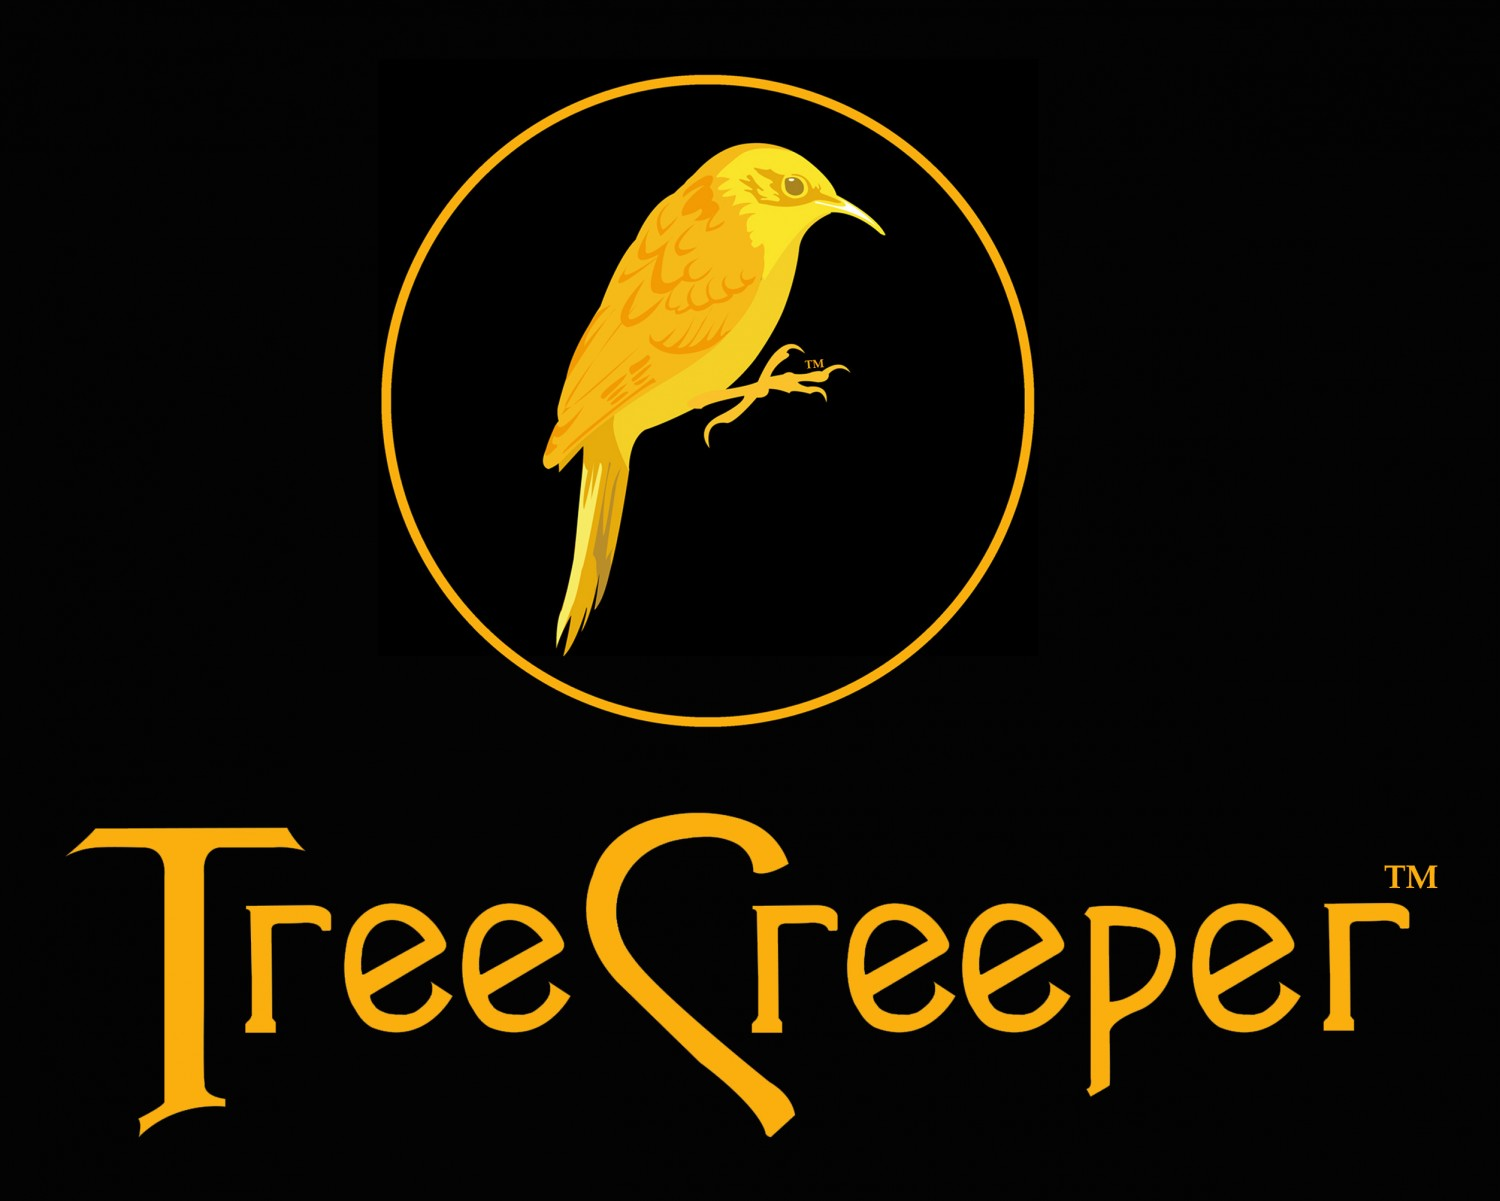 TreeCreeper Guitars